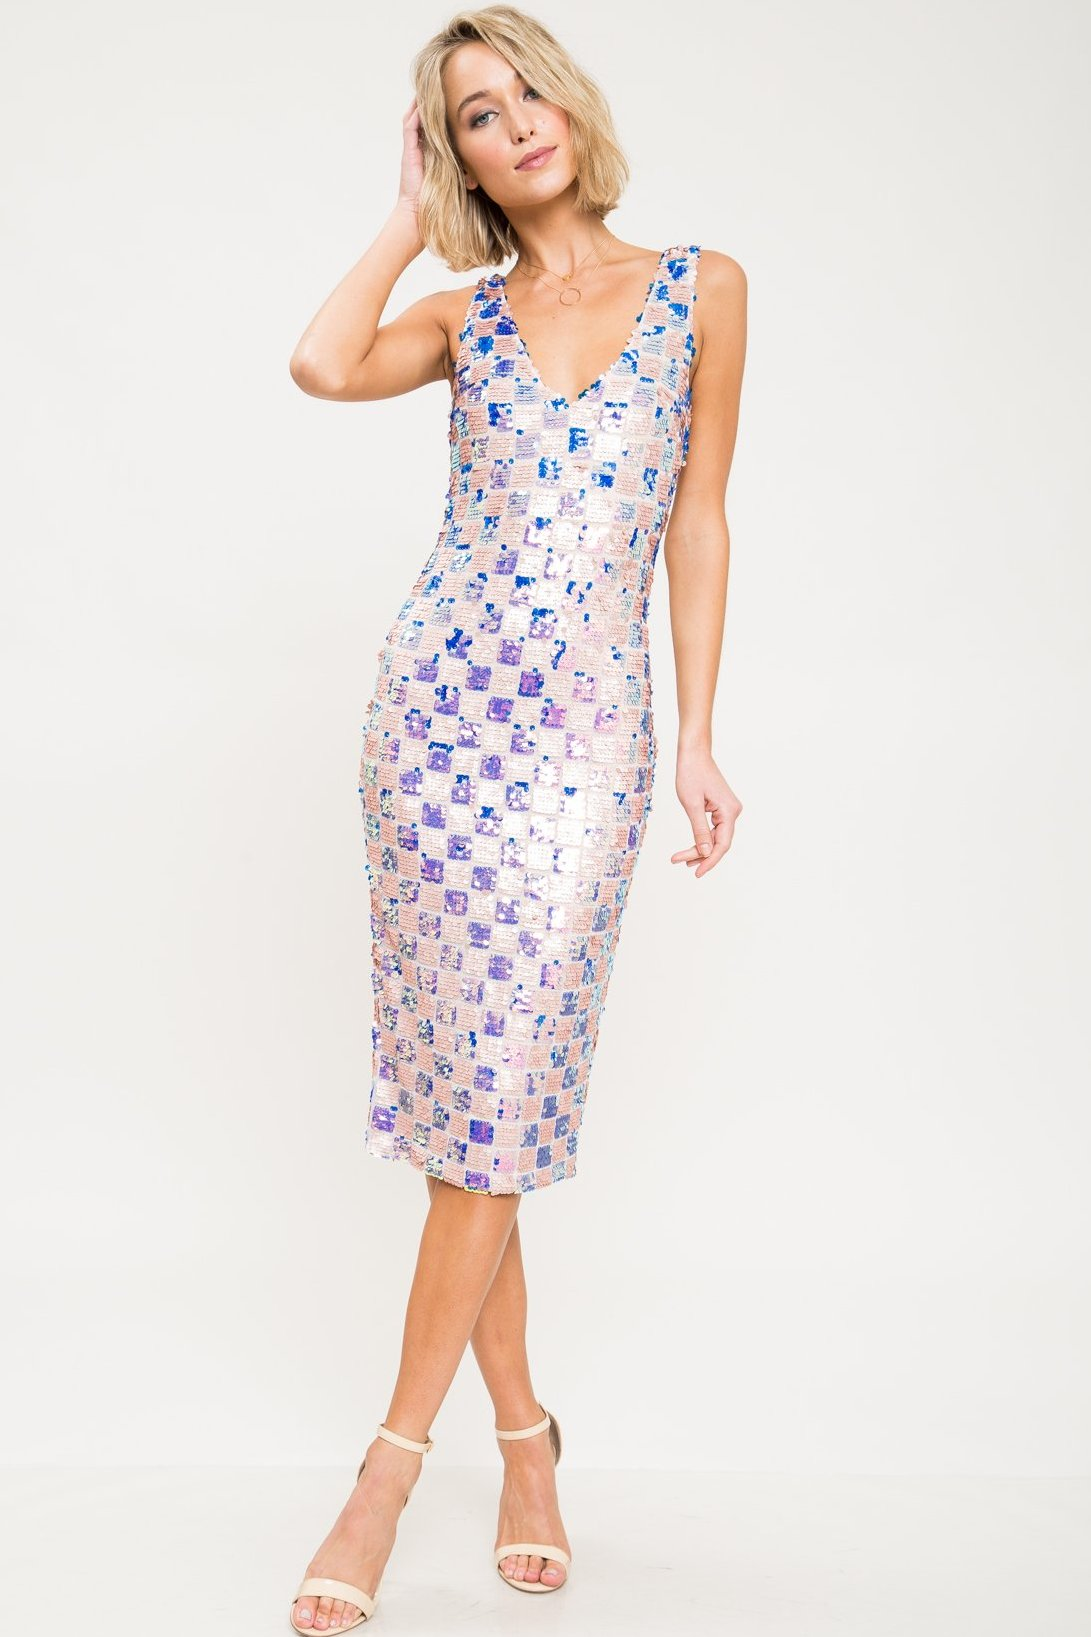 La Dolce Vita Sequin Midi Dress - Geegeebae